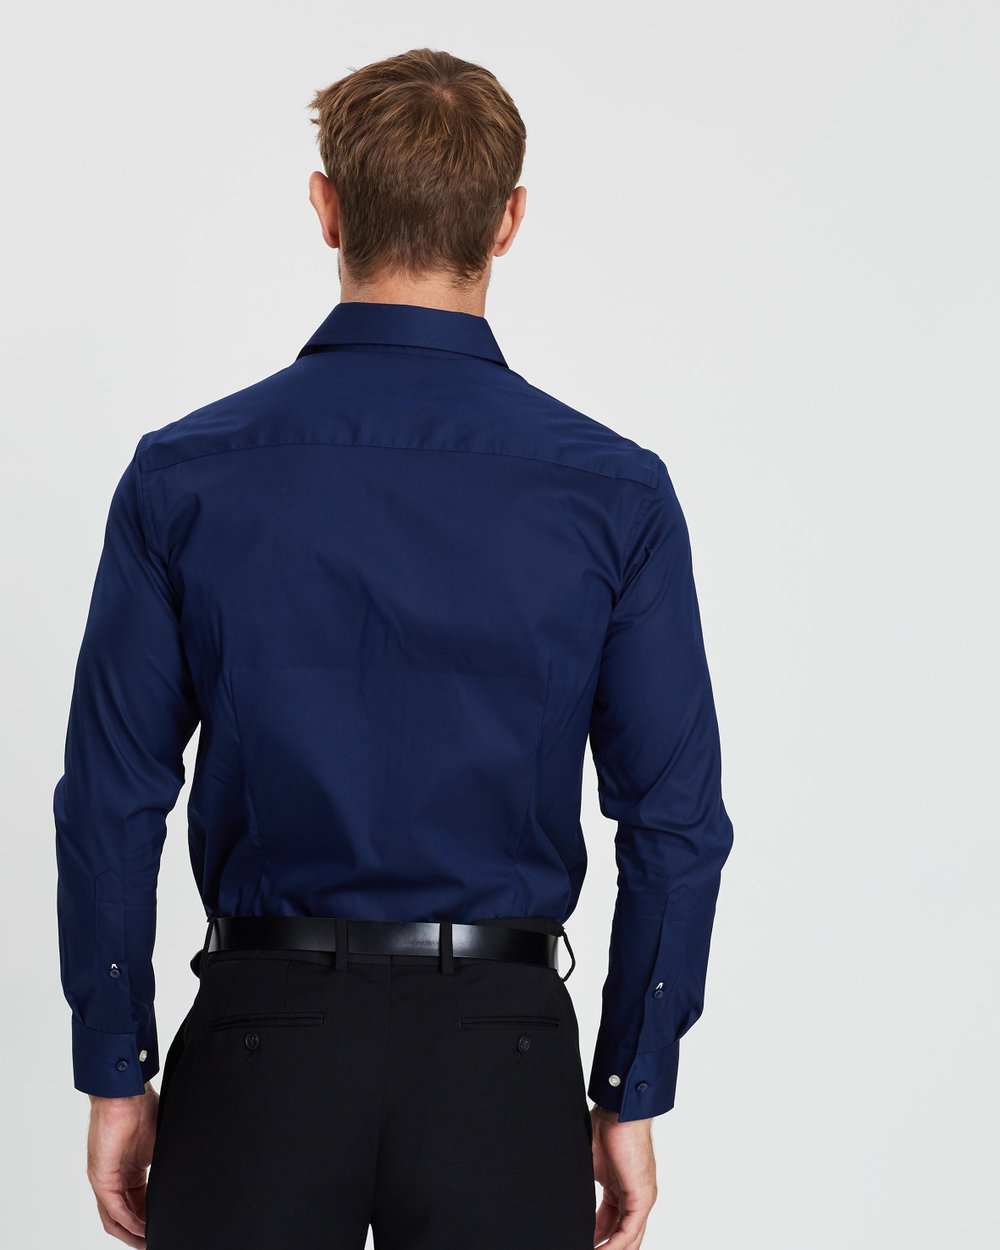 Slim Fit Shirt By Pierre Cardin Online The Iconic Australia